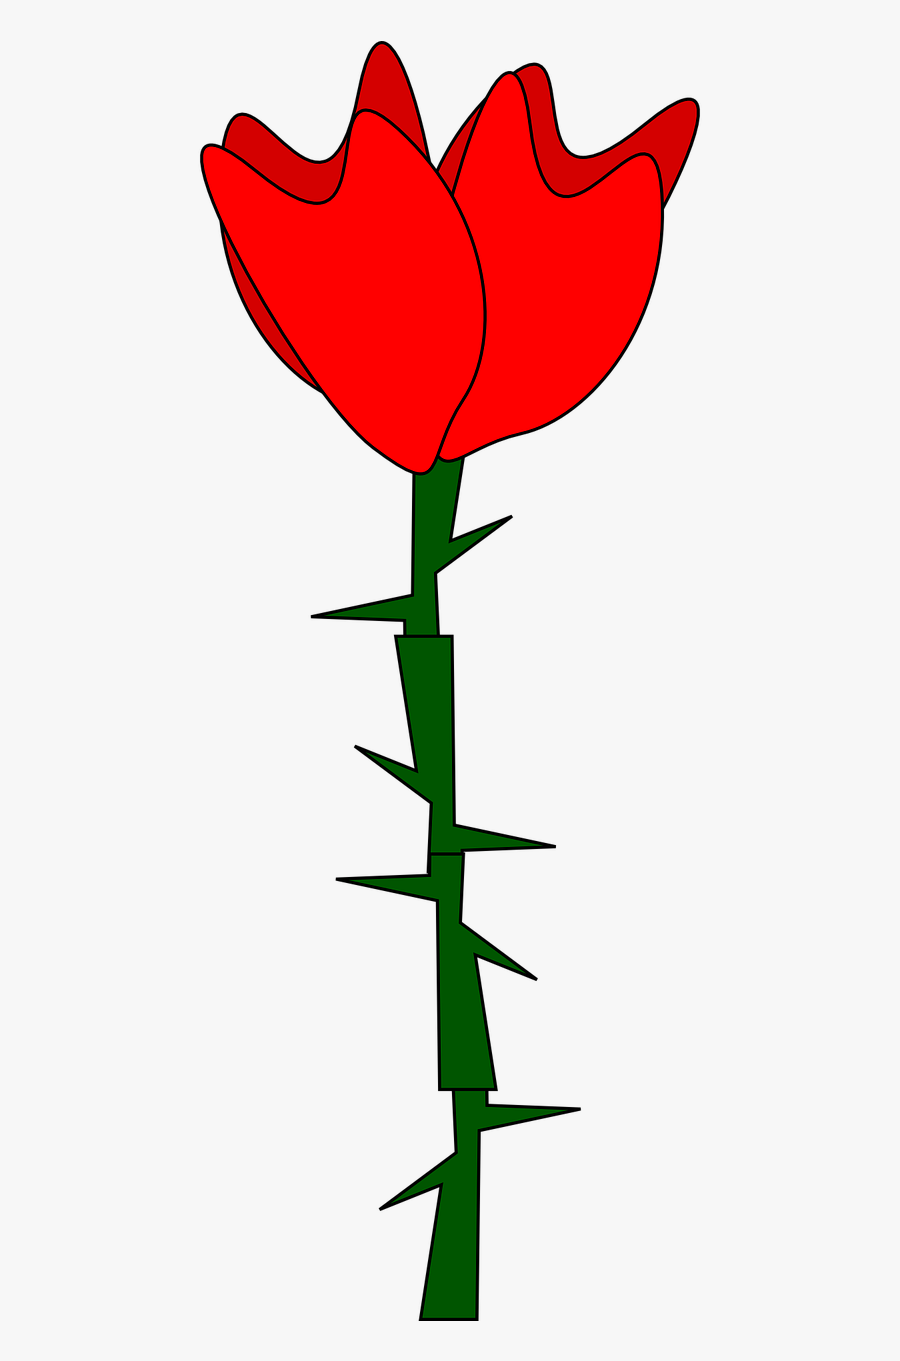 Transparent Beauty Vector Png - Rose With Thorns Clipart, Transparent Clipart